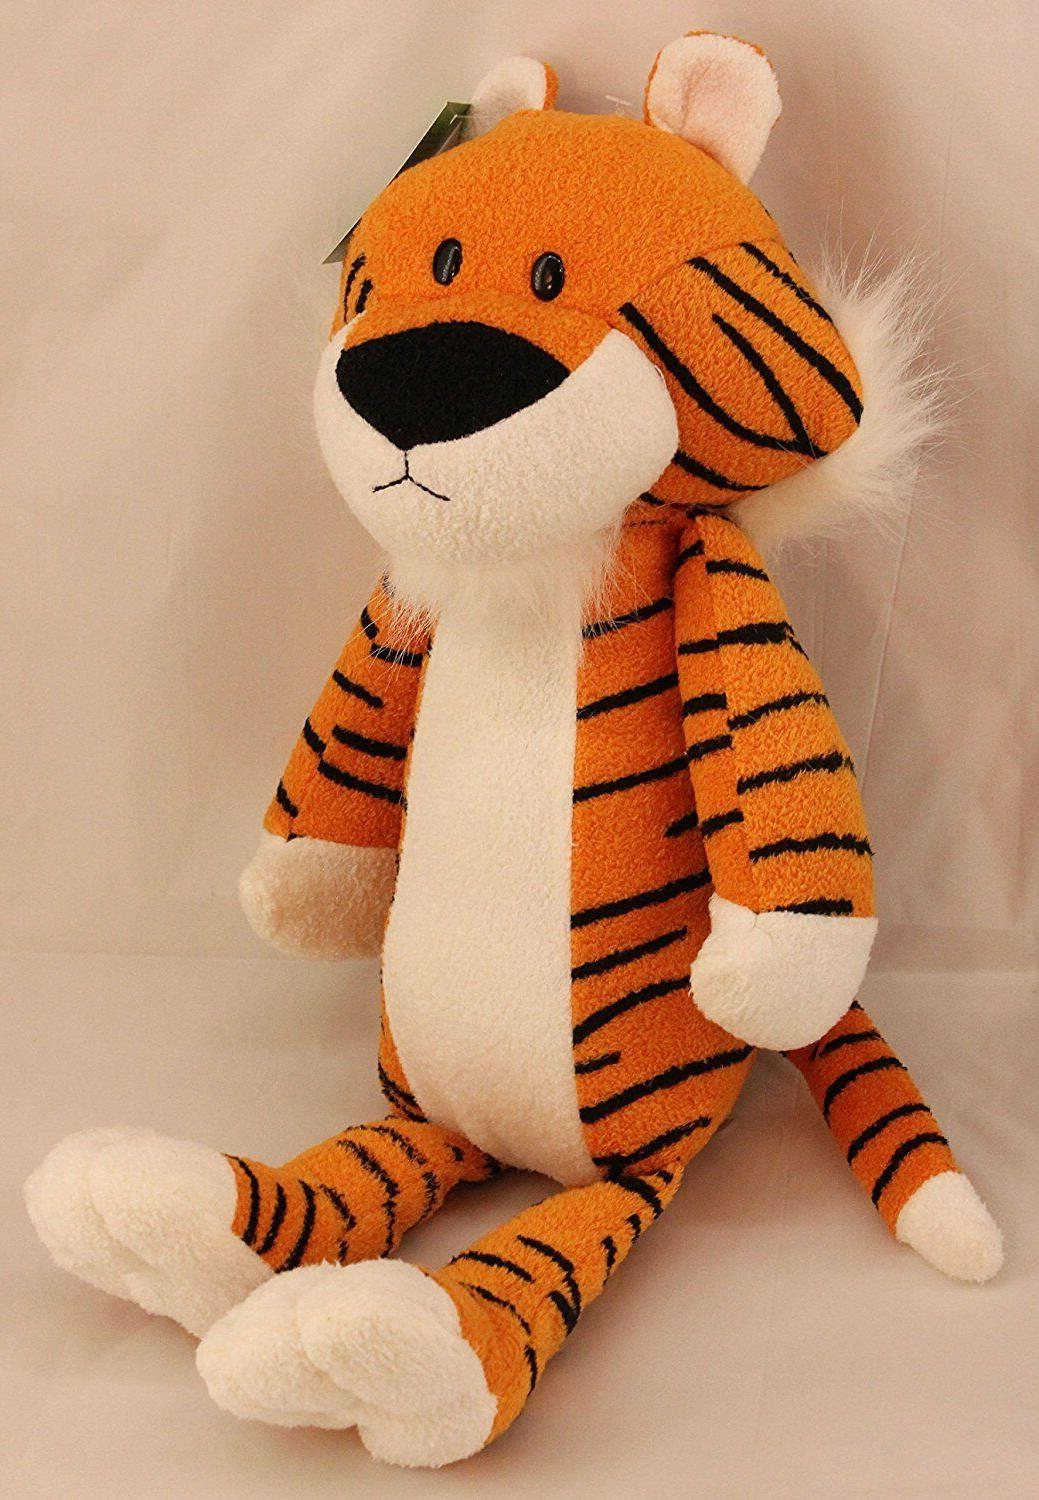 Sweet Sprouts Tiger Figure Toy Stuffed Doll Animal US 18 inch